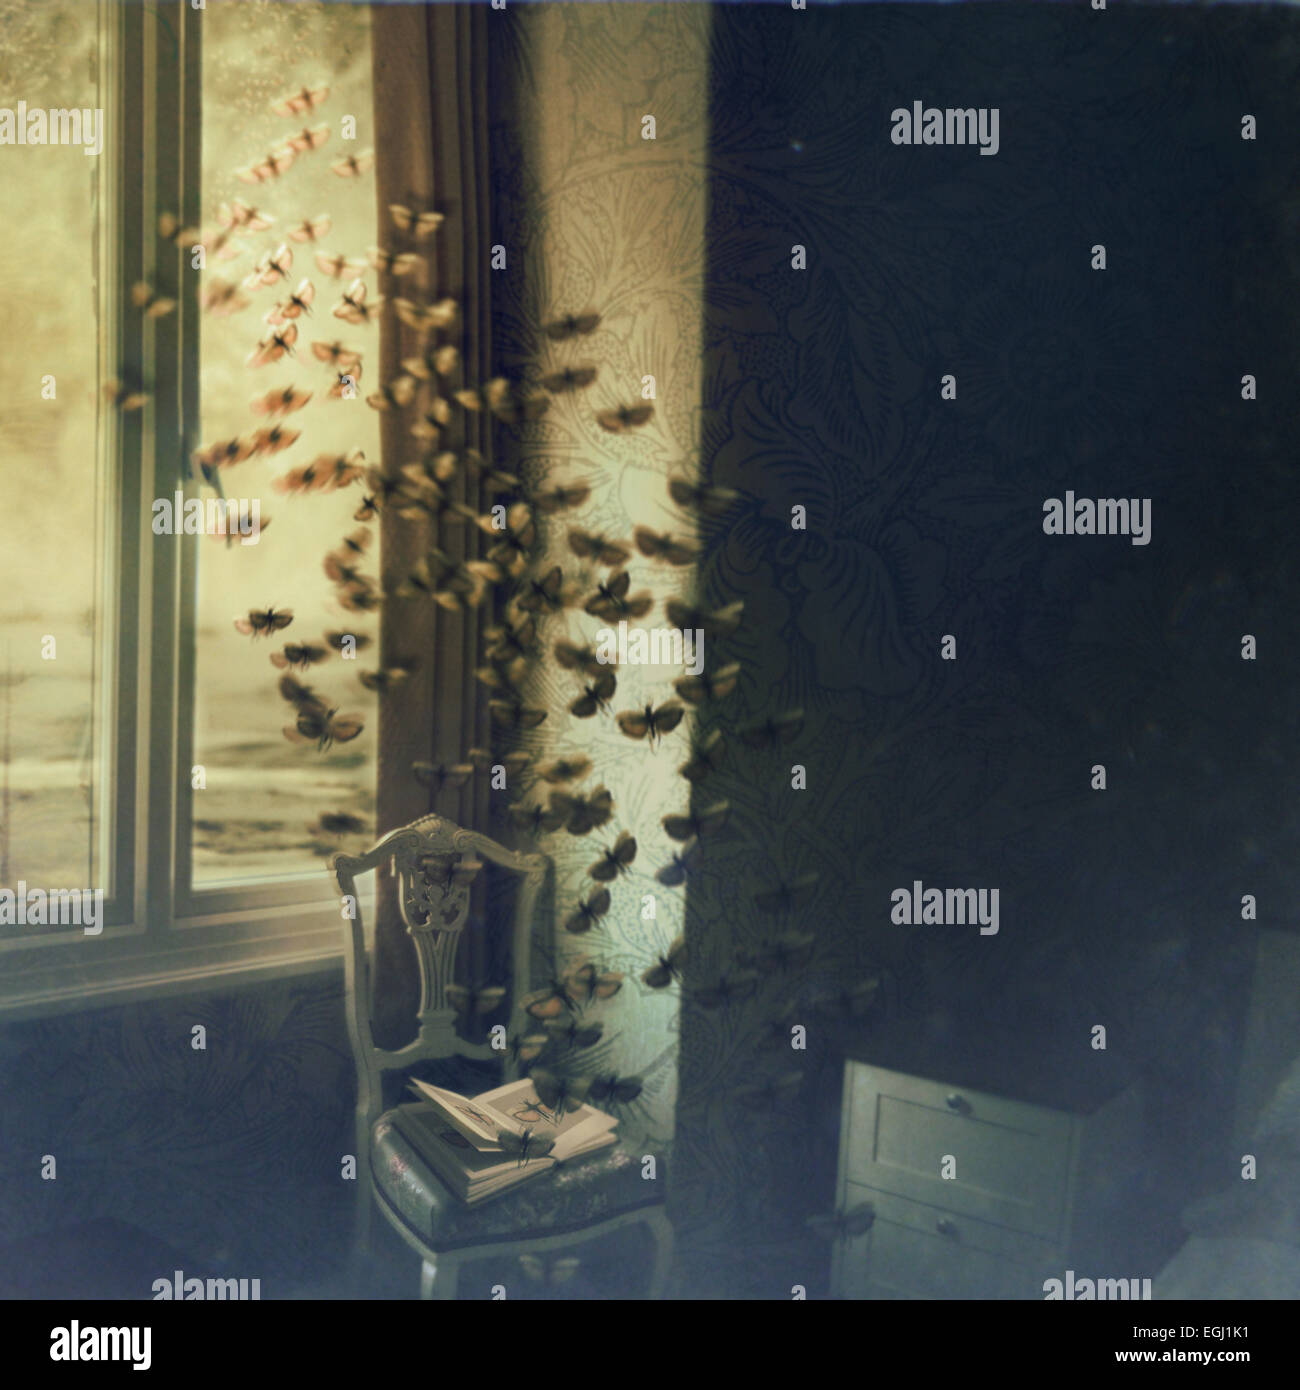 butterflies flying from opened book - Stock Image